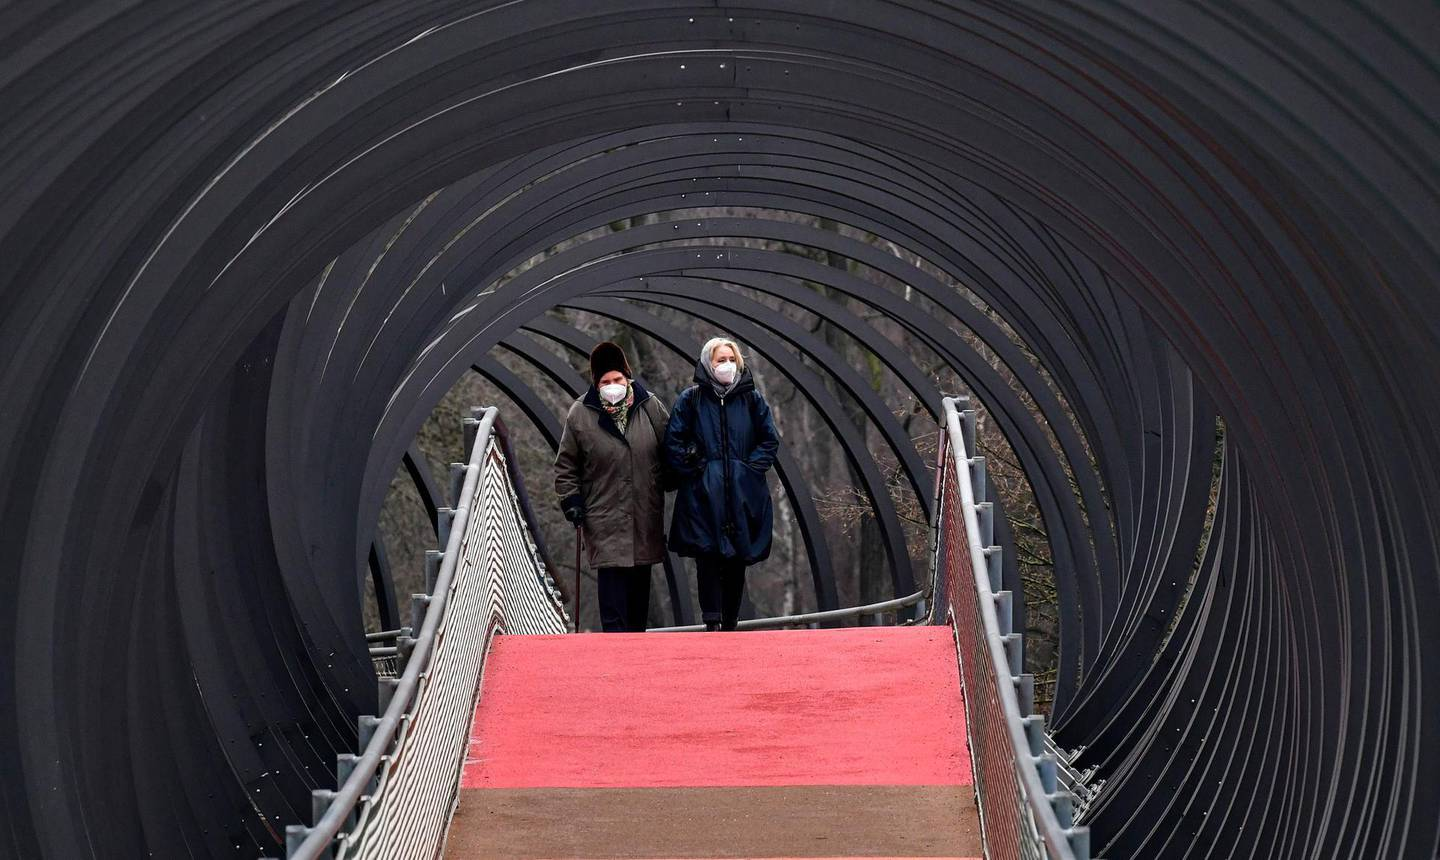 People wear protective face masks due to the coronavirus pandemic, as they walk over a bridge during the lockdown in Oberhausen, Germany, Monday, Jan. 11, 2021. (AP Photo/Martin Meissner)